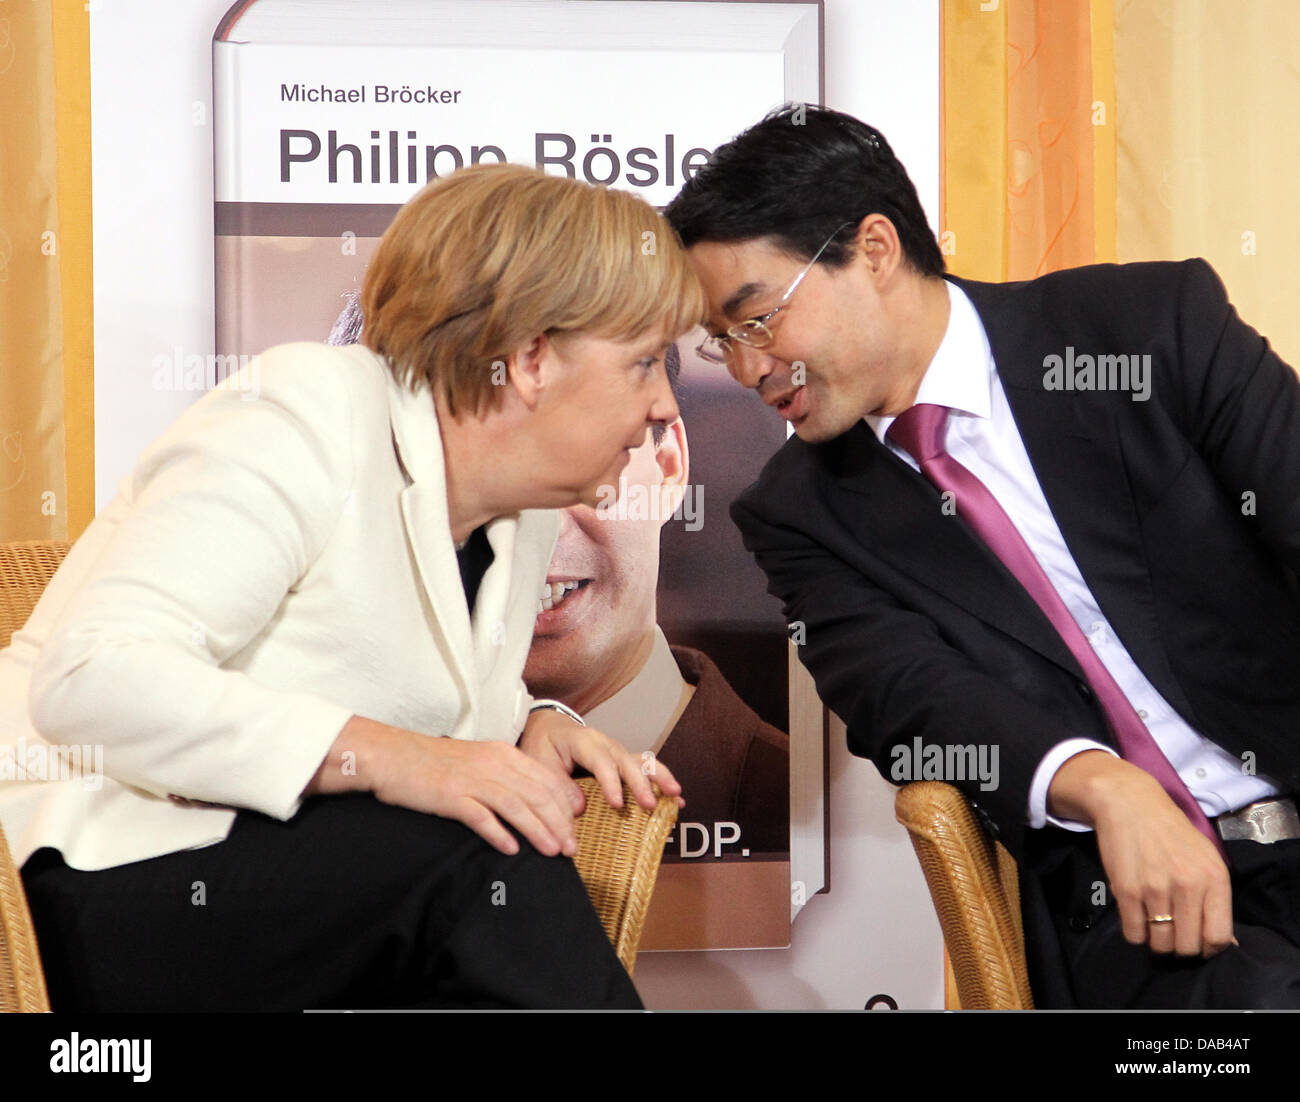 Chancellor Angela Merkel And Vice Chancellor Philipp Roesler Present Stock Photo Alamy